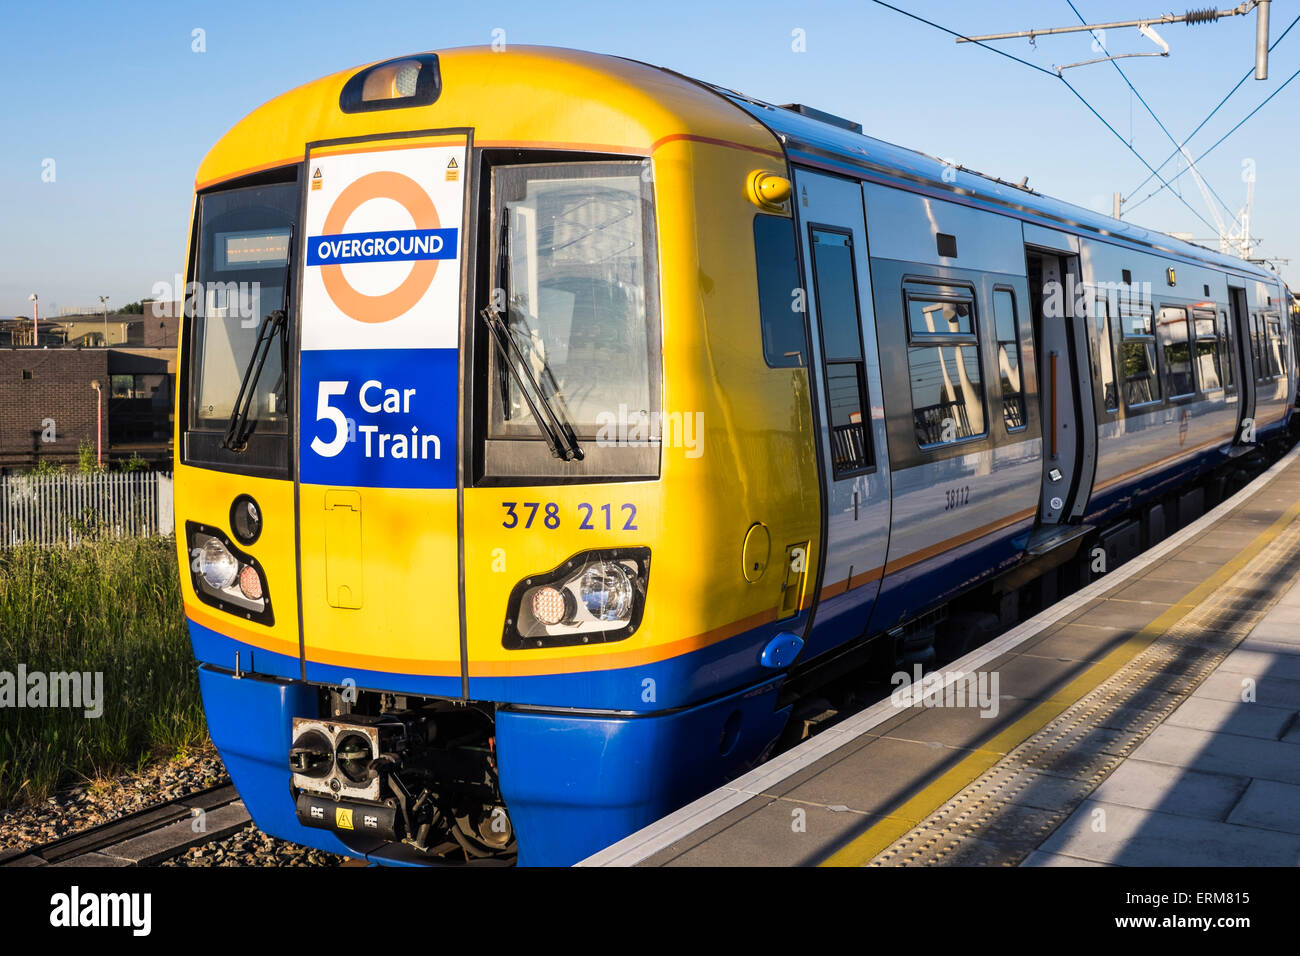 London Overground 5 car train at Willesden Junction, London, England, U.K. - Stock Image